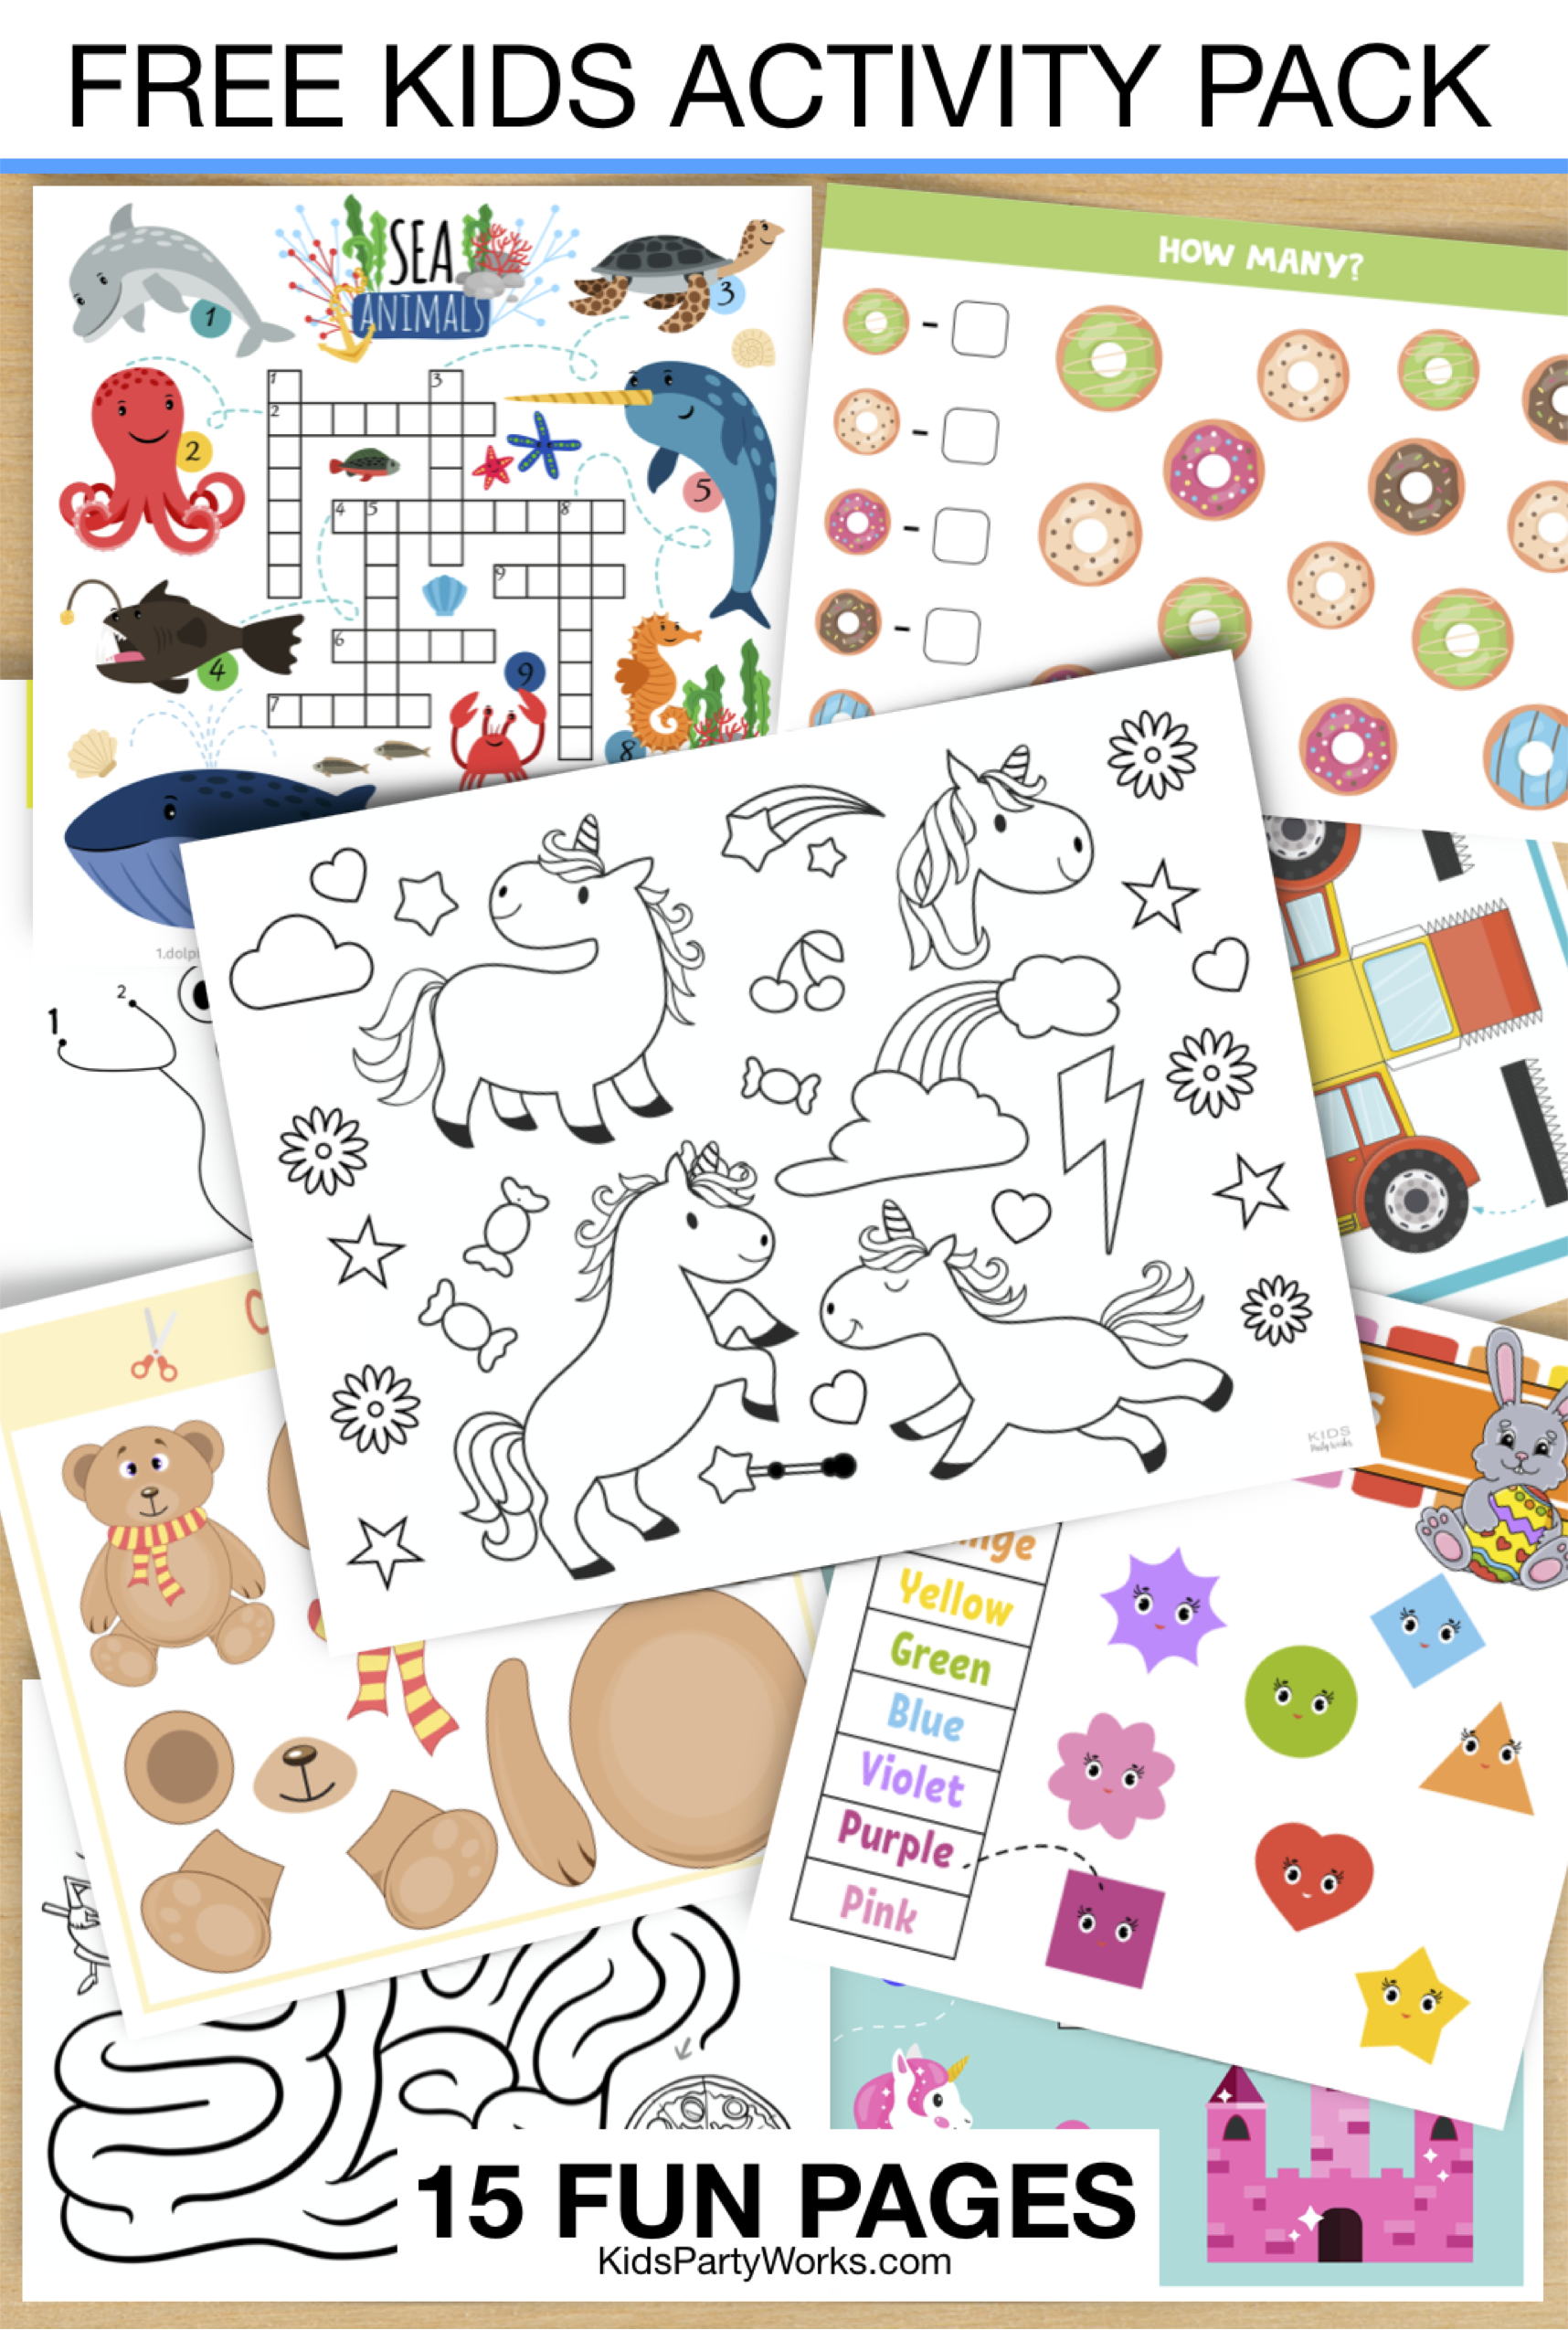 Free Kids Activities Pack by KidsPartyWorks.com